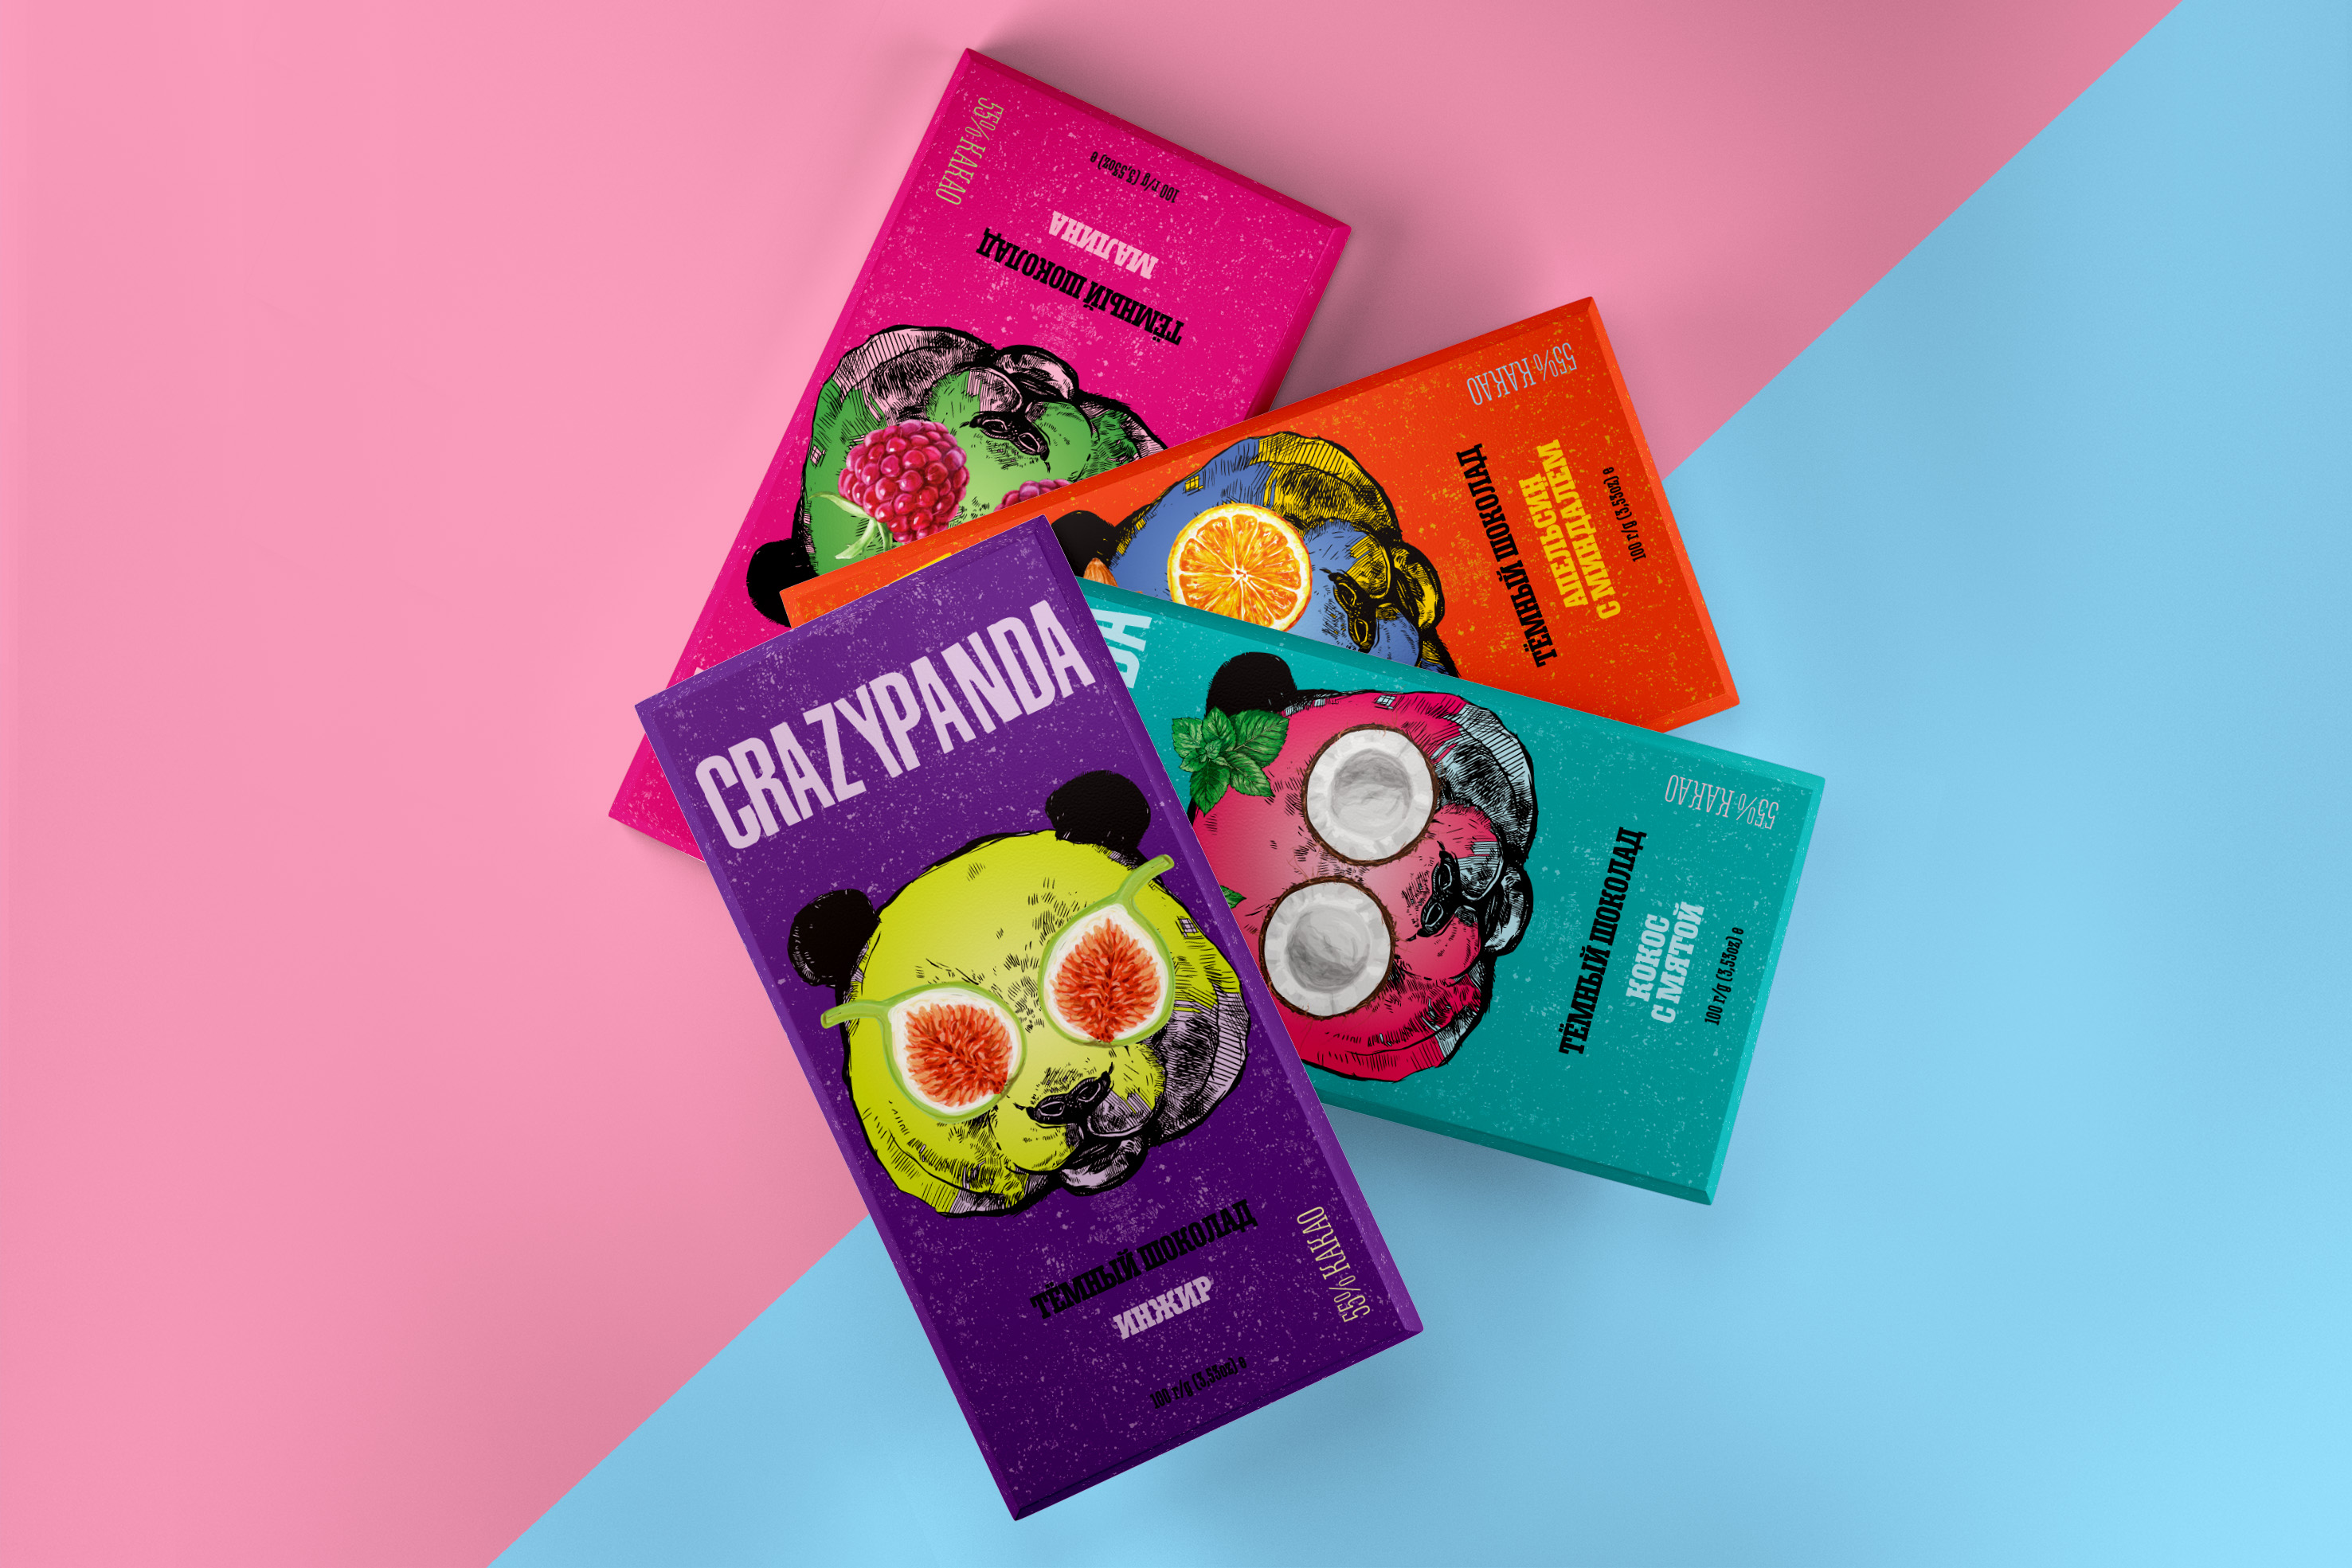 Packaging concept for chocolate CrazyPanda by Alisa Vorkunova